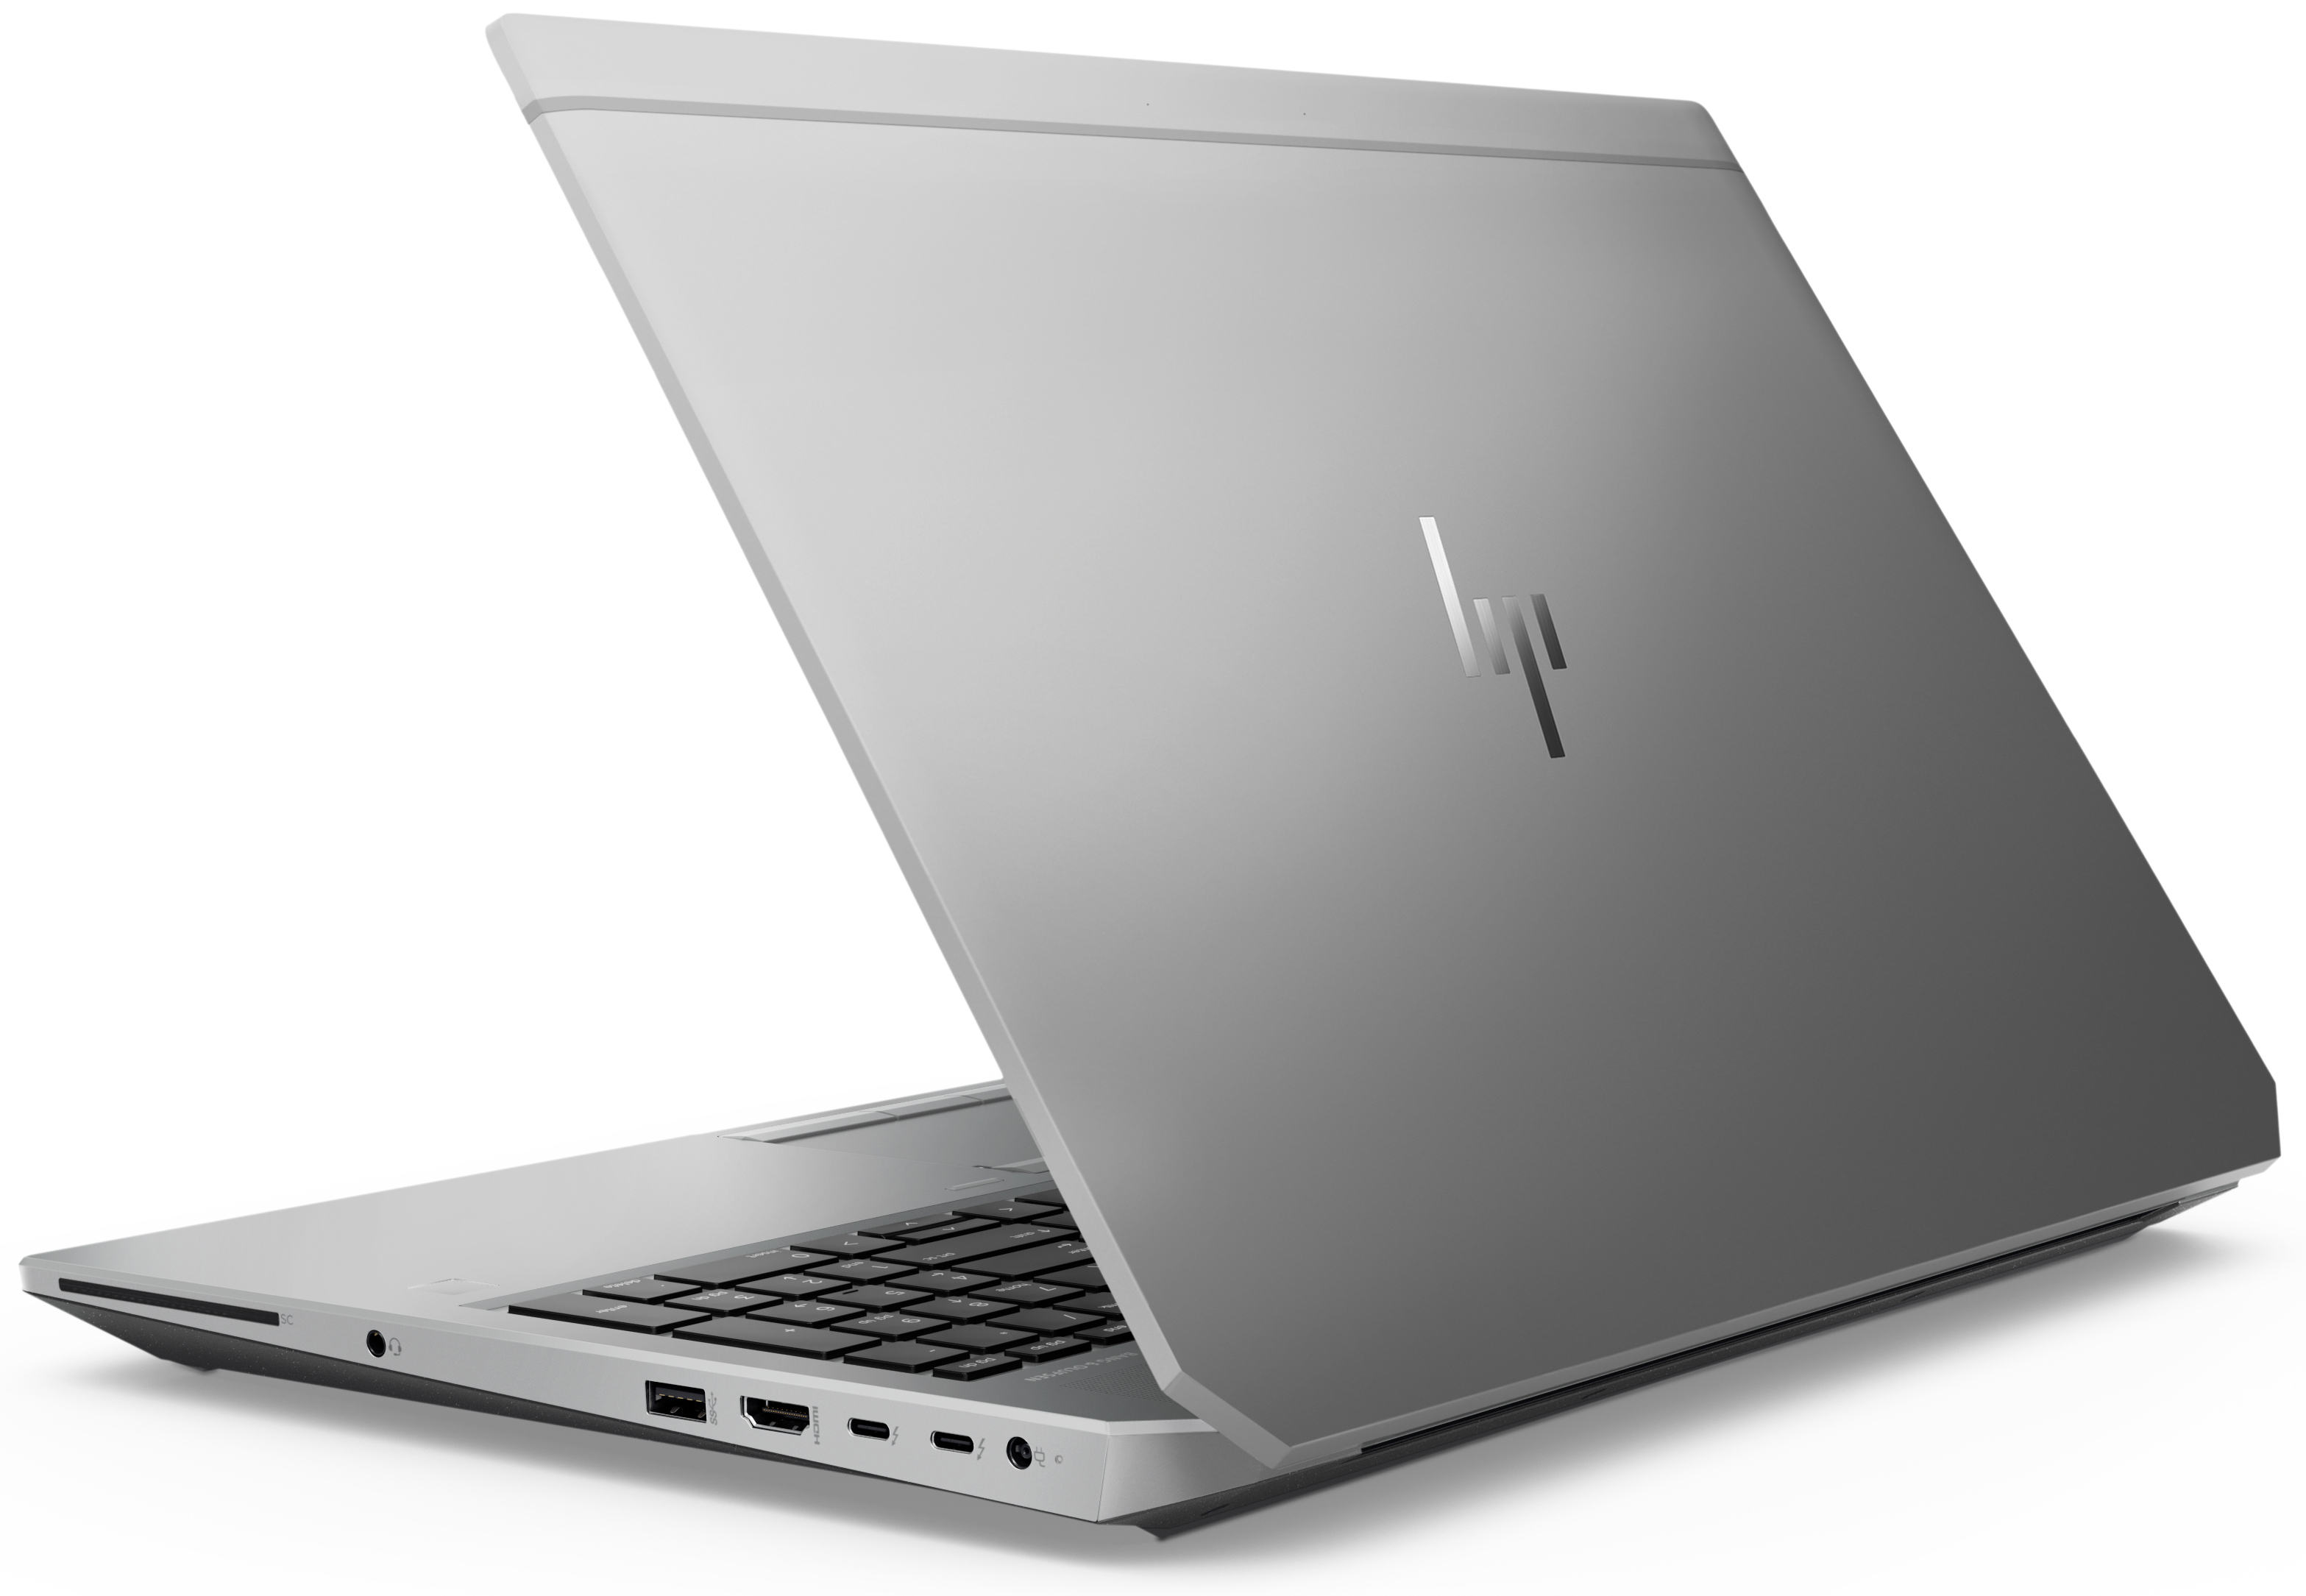 HP Boosts ZBooks with Core i9, Quadro P2000/P5200, & Up to